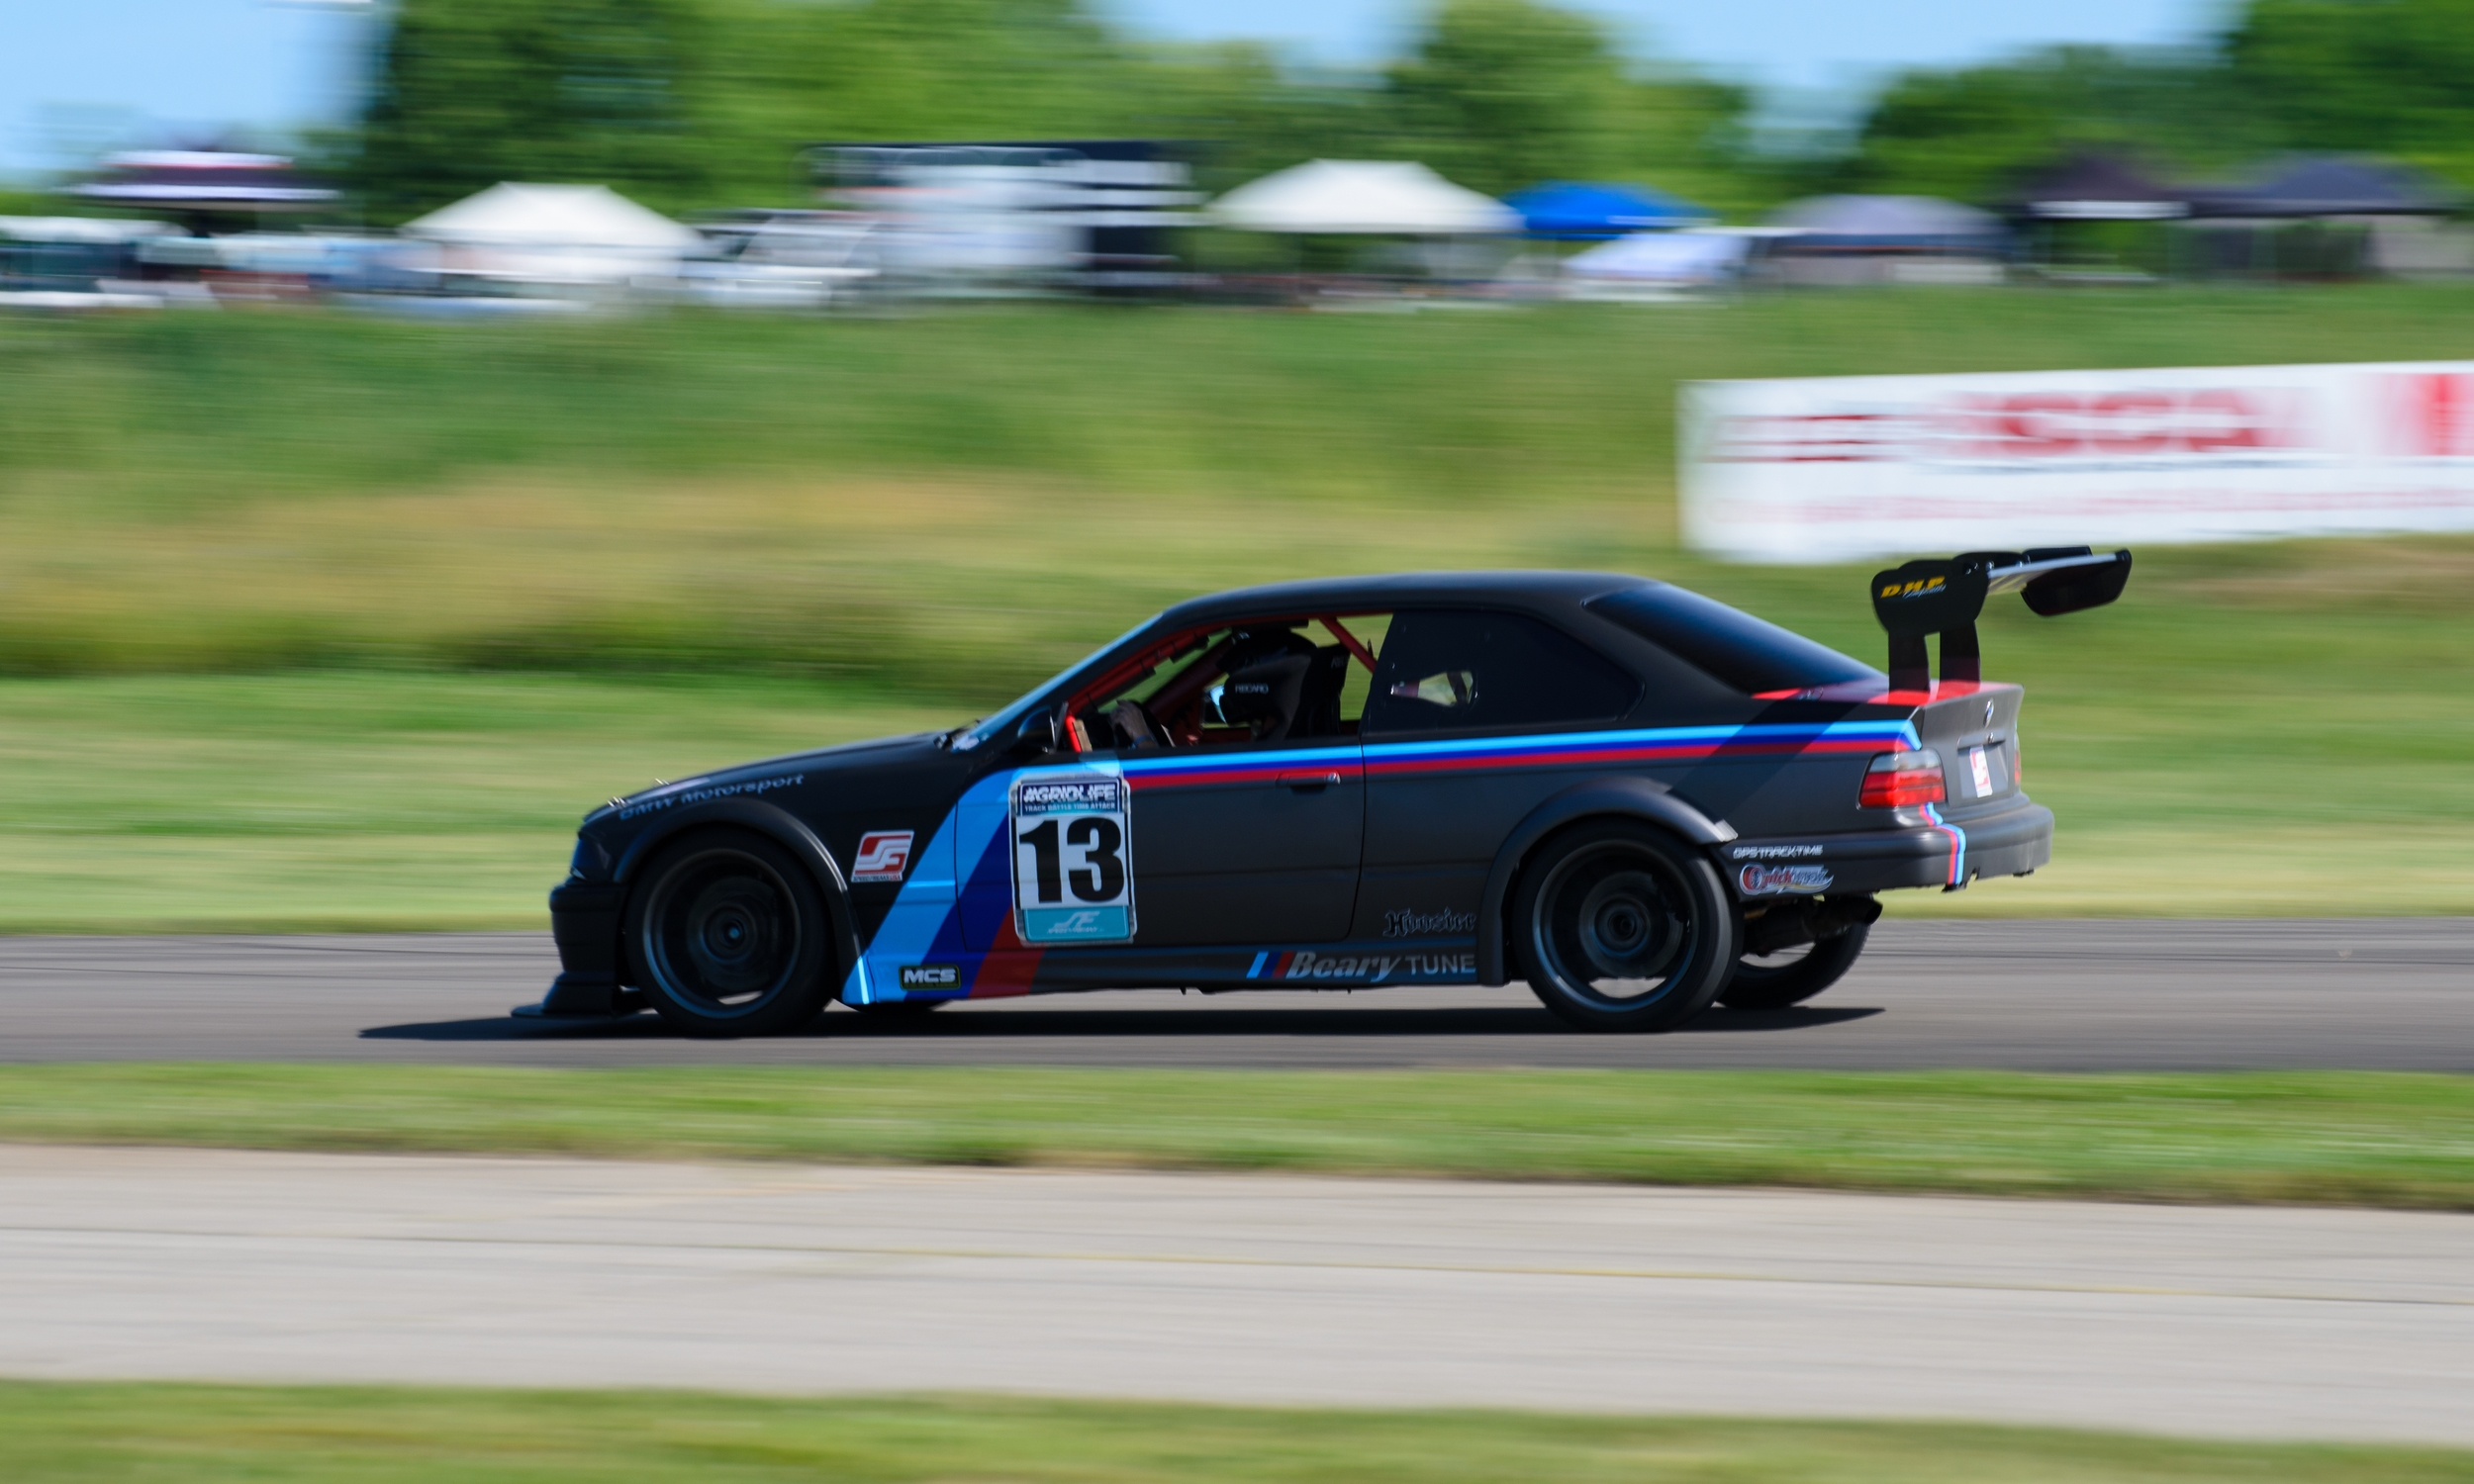 Ryan and his NASA ST3 prepared M3 showed what a wheel to wheel car can do in timeattack. Putting down a respectable time of 1:38.261 taking home first in Track Mod RWD.